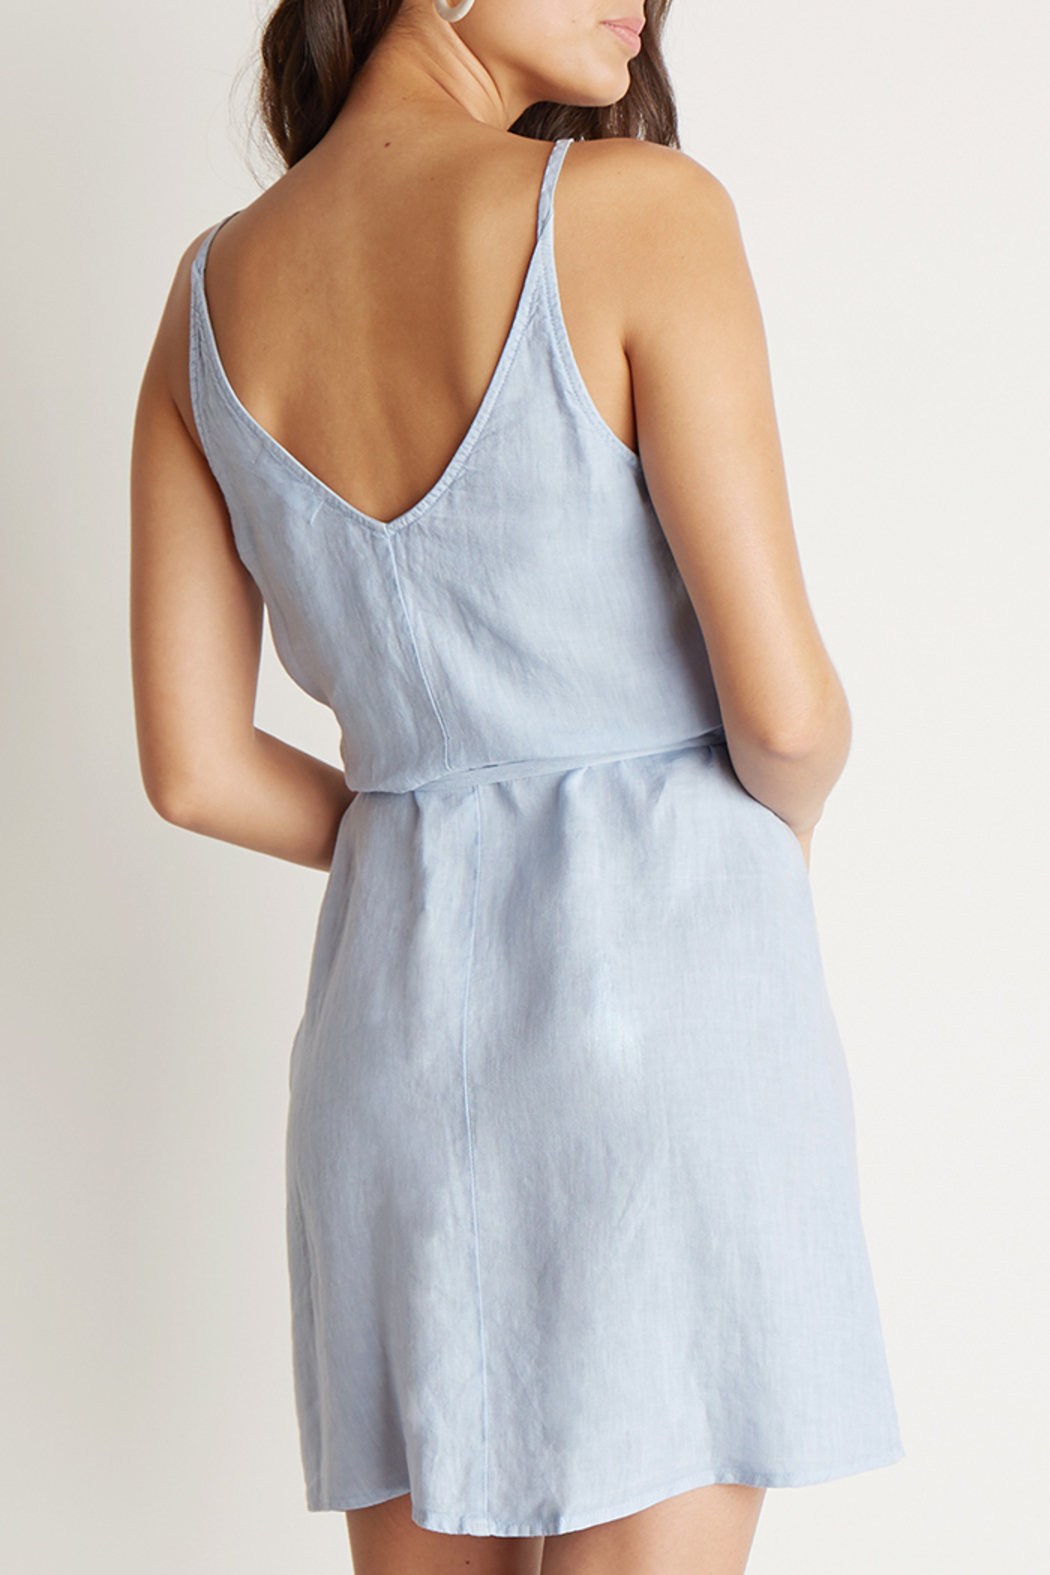 Bella Dahl V-BACK WRAP DRESS - Side Cropped Image